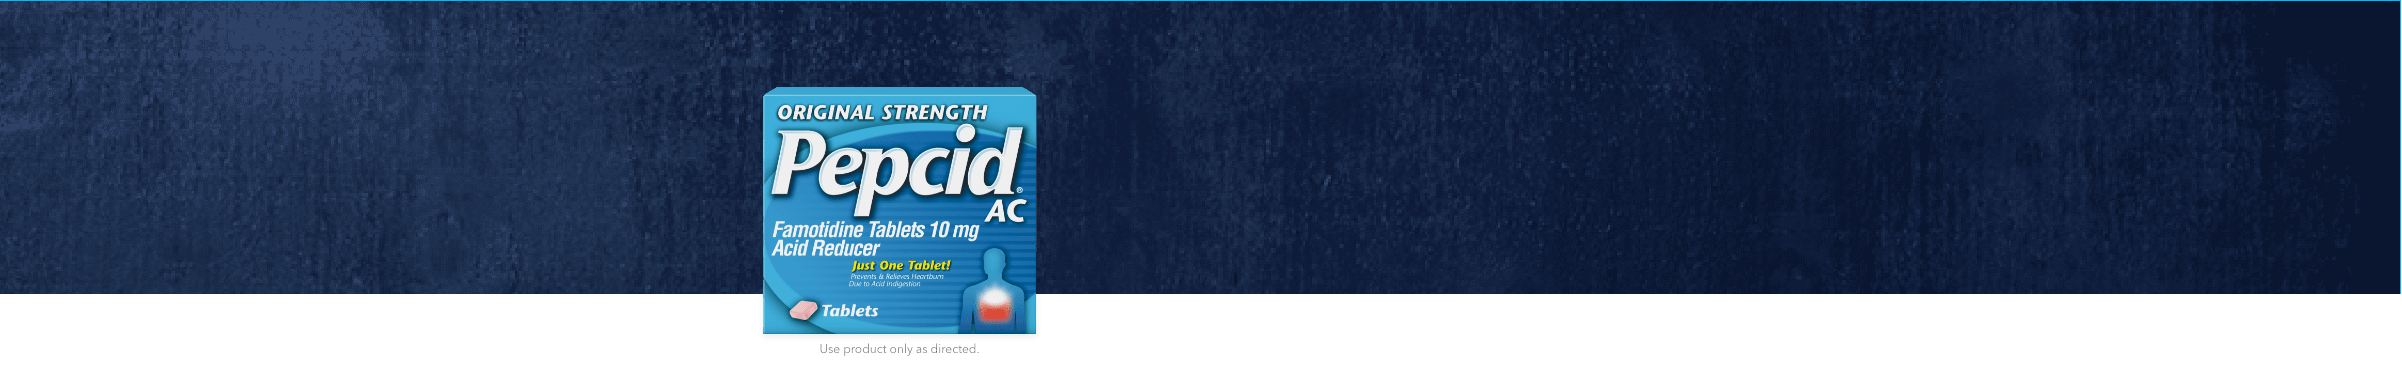 original strength pepcid ac package in front of dark blue background